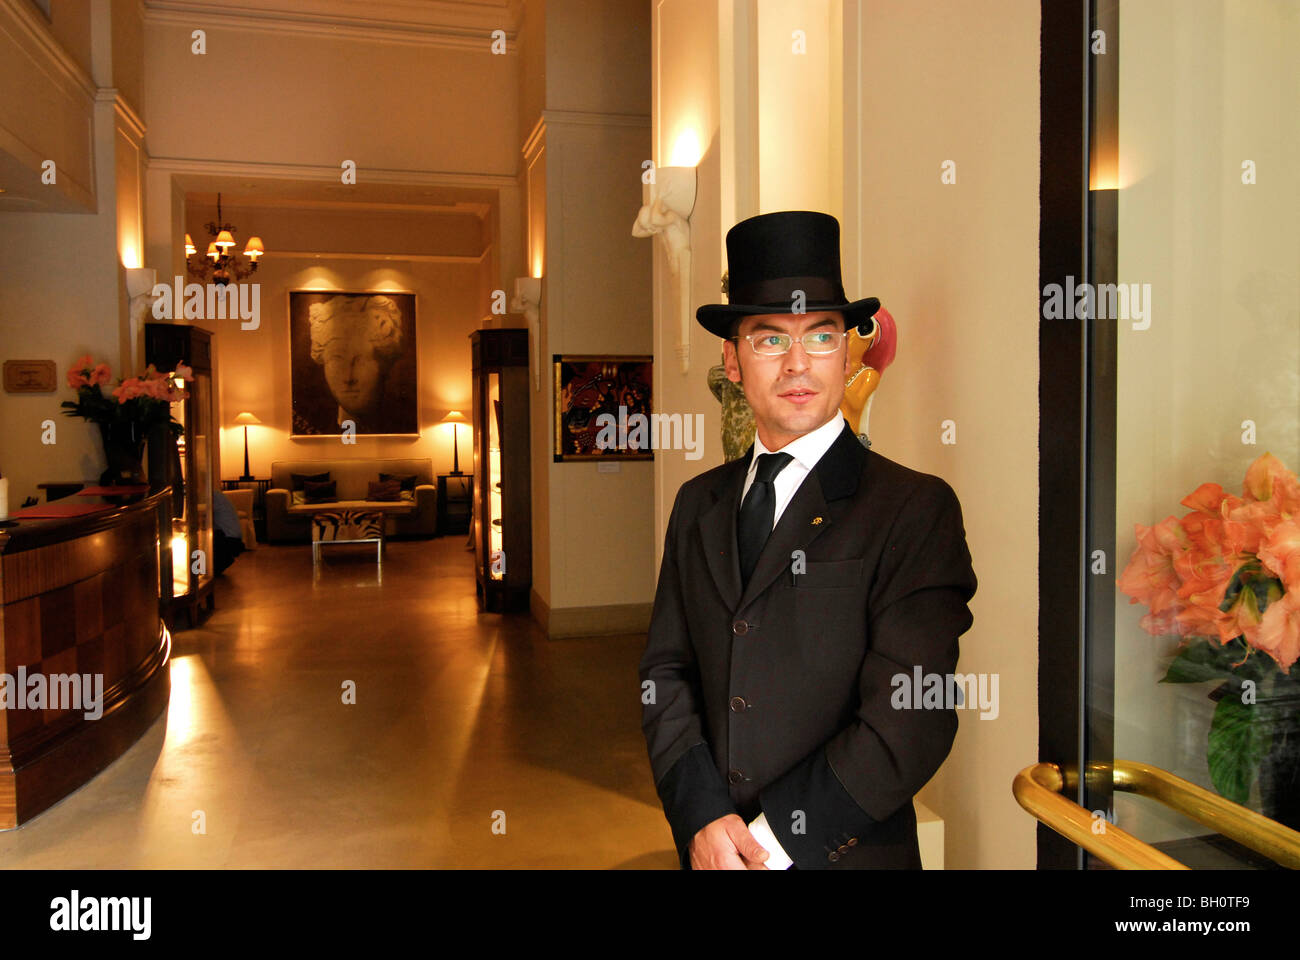 Doorman wearing a top hat in front of the lobby of the Savoy Hotel Florence Tuscany Italy Europe  sc 1 st  Alamy & Doorman wearing a top hat in front of the lobby of the Savoy Hotel ... pezcame.com